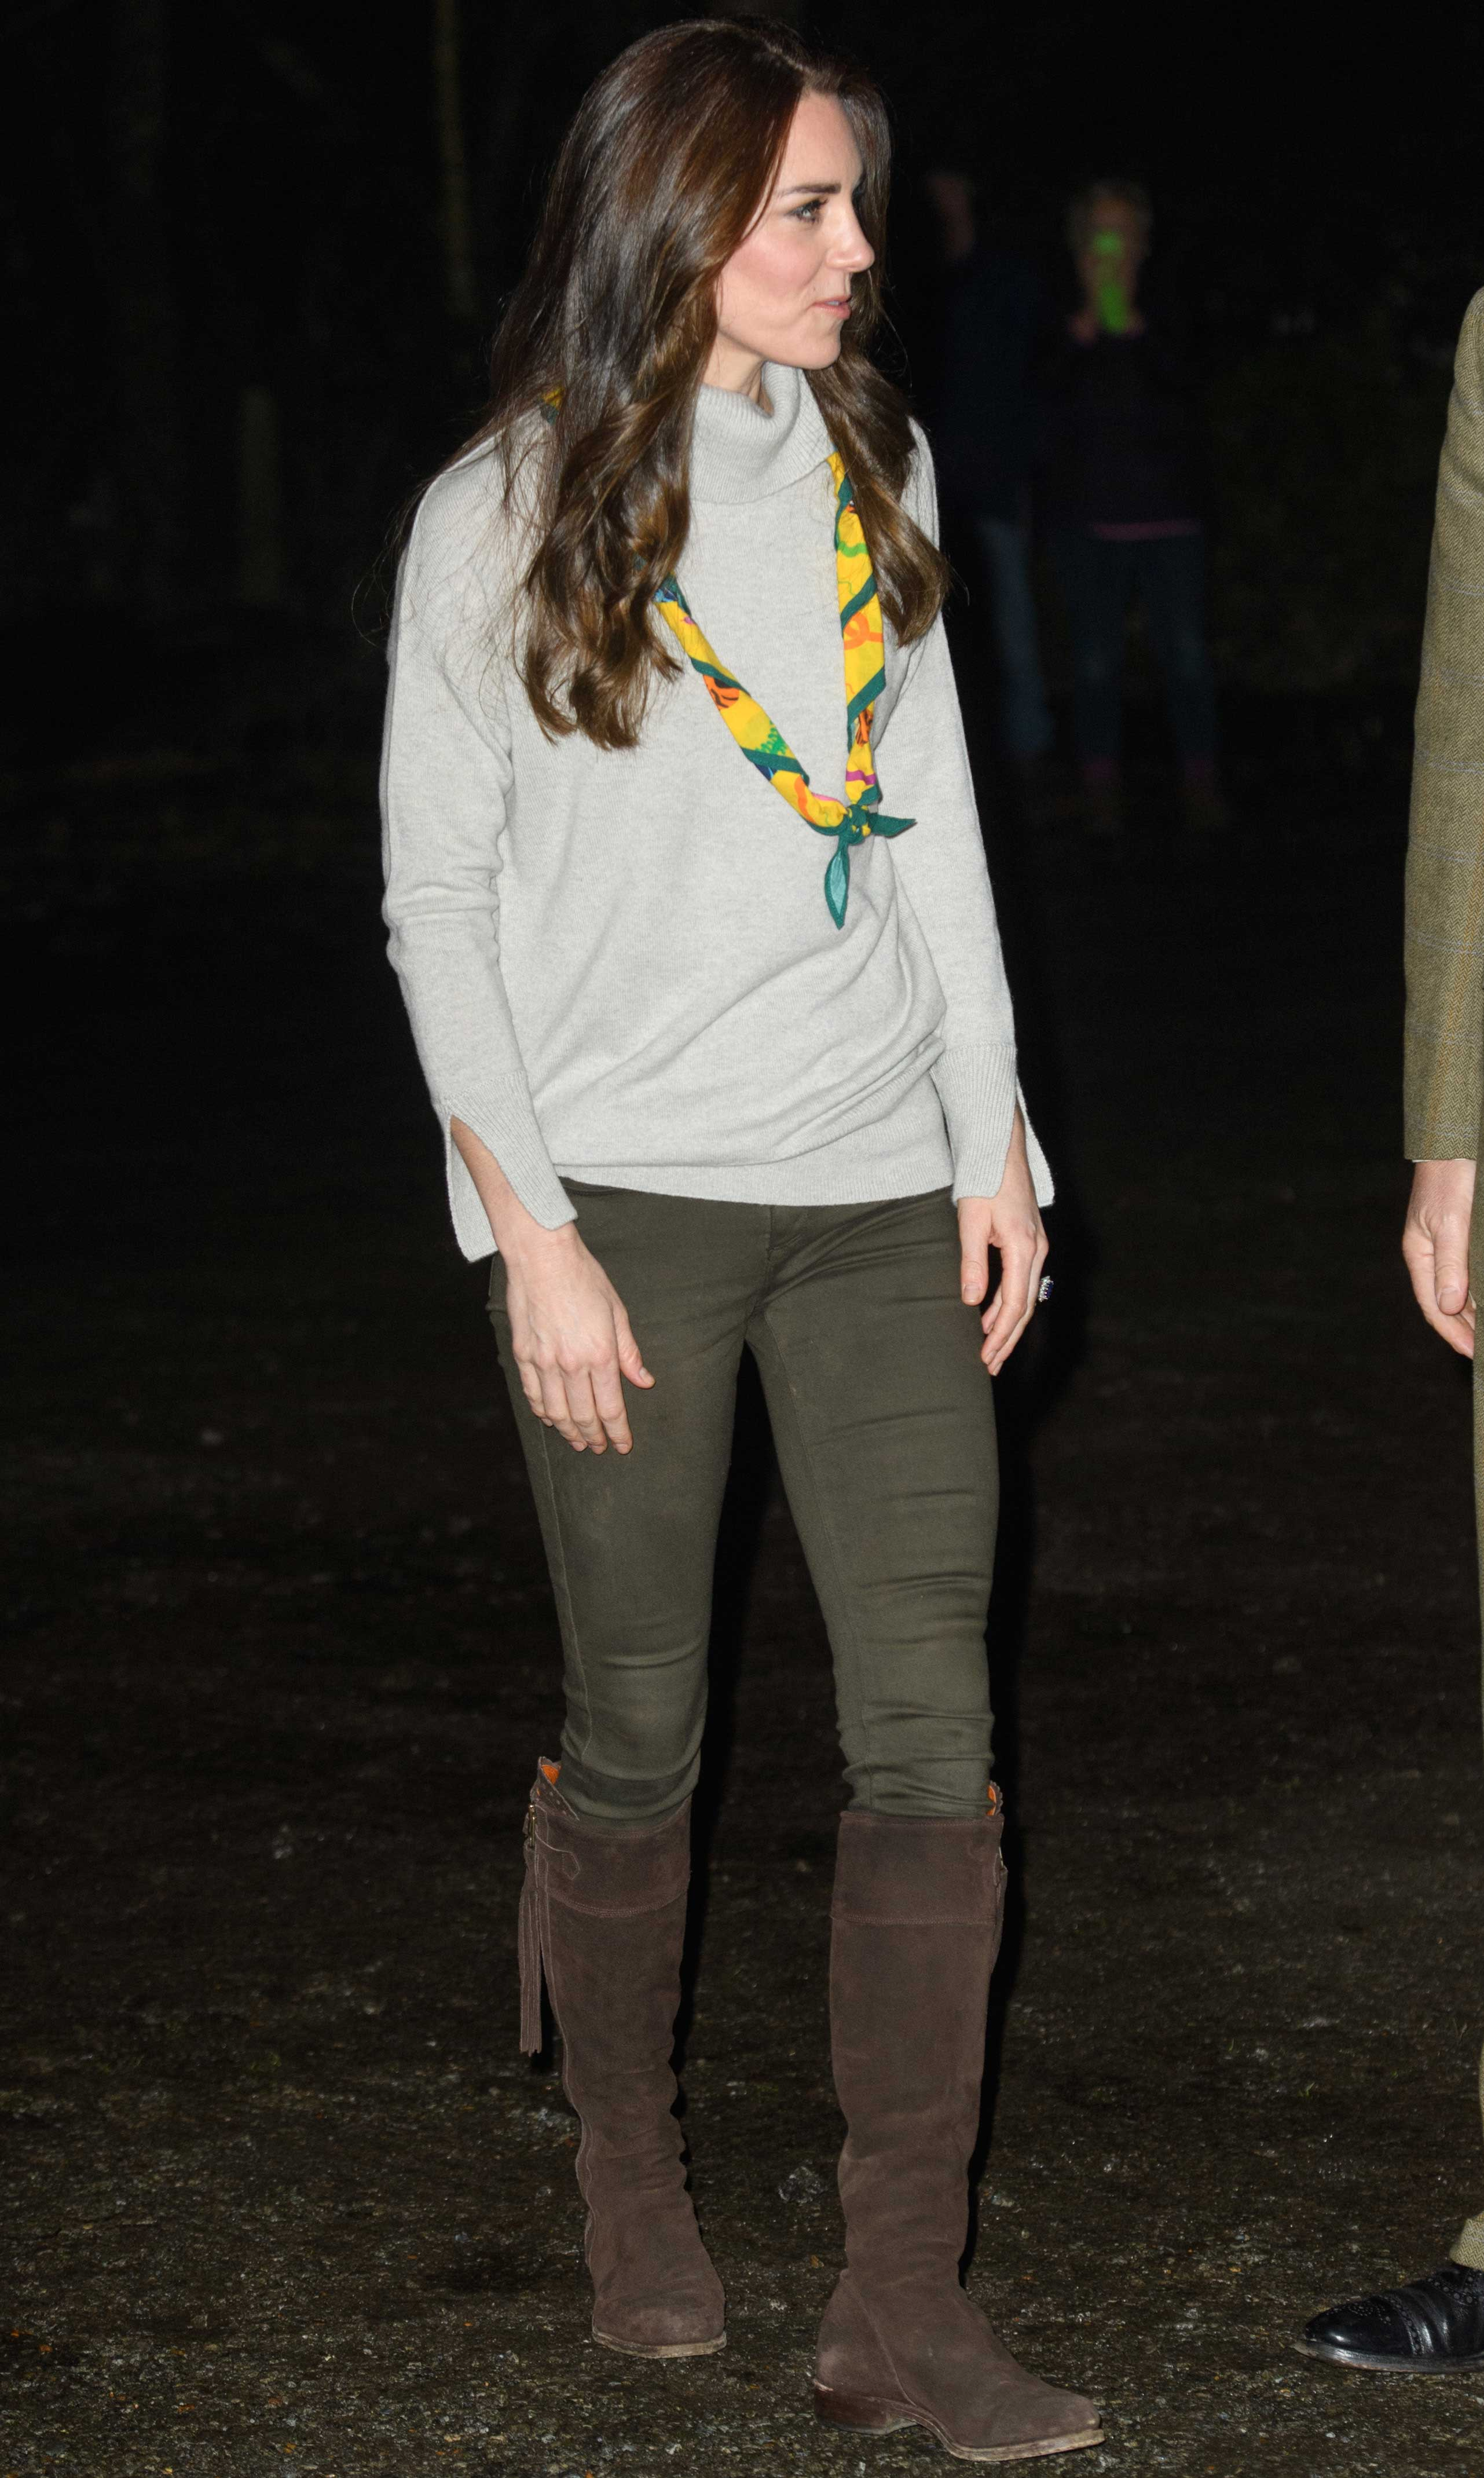 Kate Middleton In Boots - Are These Kate Middleton S